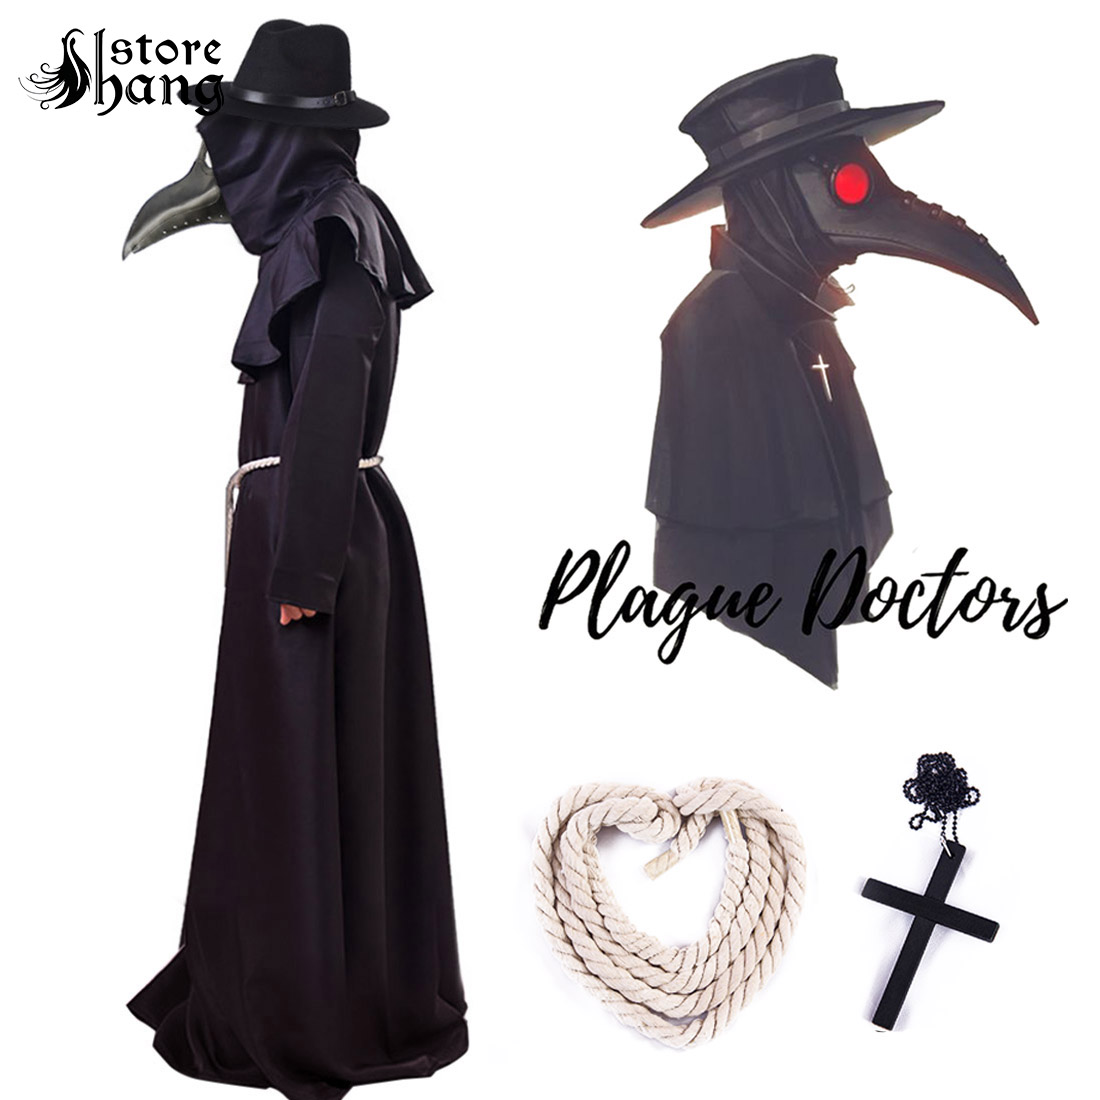 Plague Doctor Cosplay Costume Steampunk Medieval Hooded Robe Beak Hat Dr Plague Role Play Outift Adult Halloween Fancy Dress